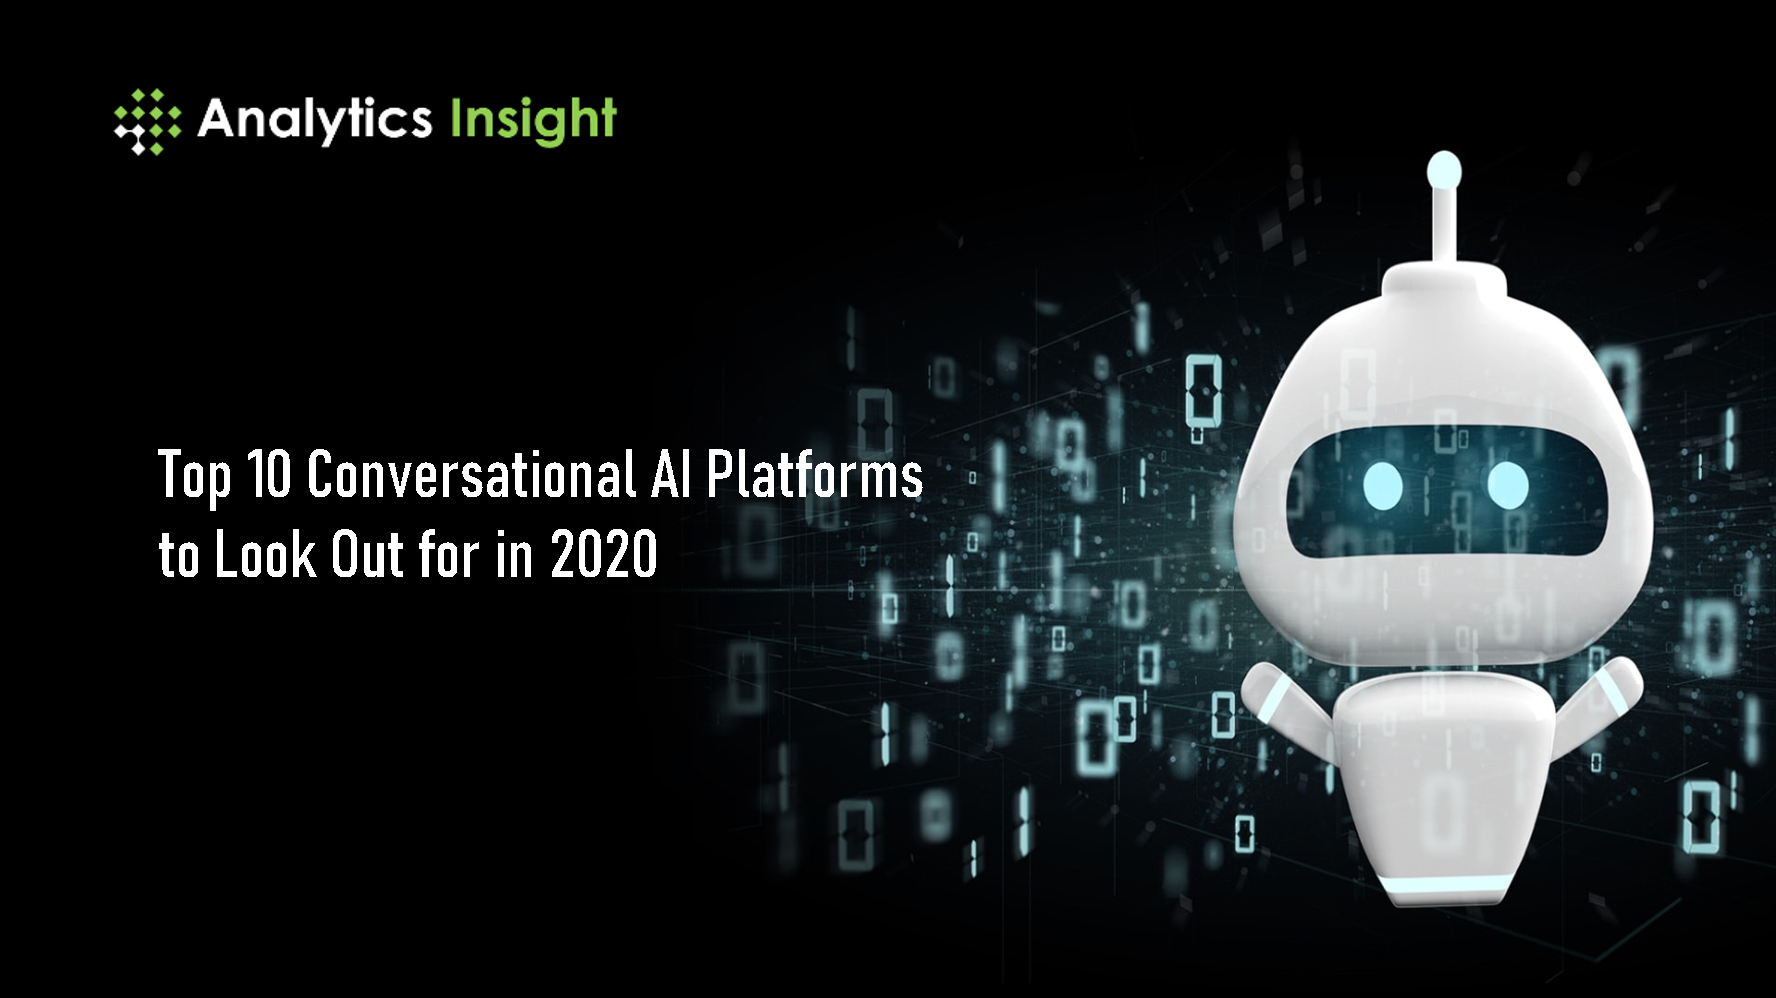 Top 10 Conversational AI Platforms to Look Out for in 2020